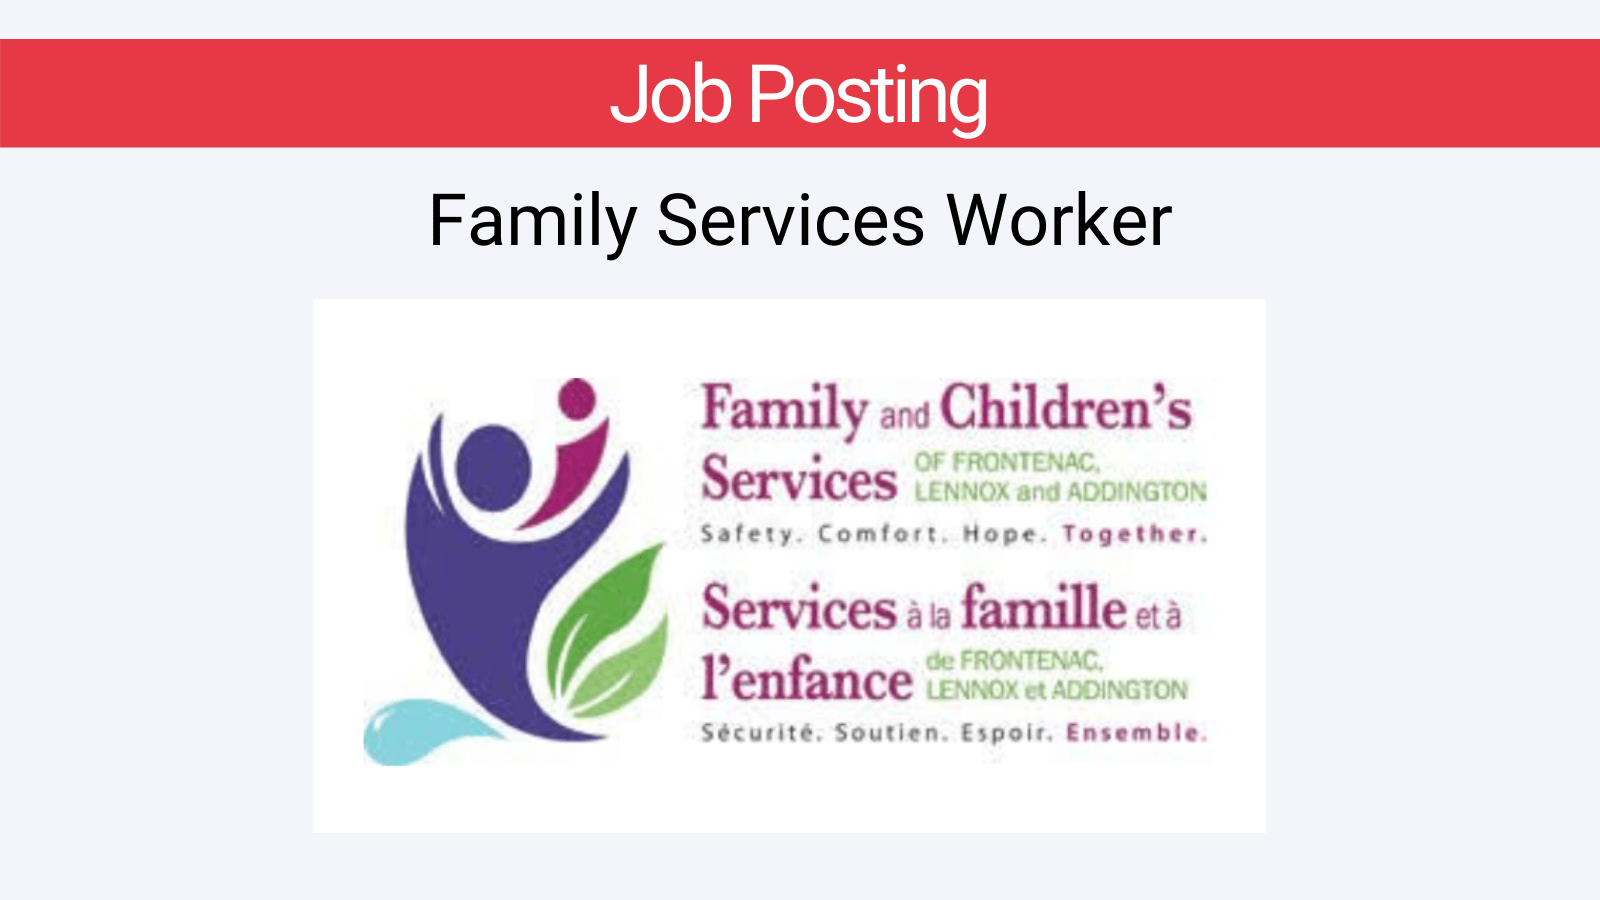 Family Services Worker